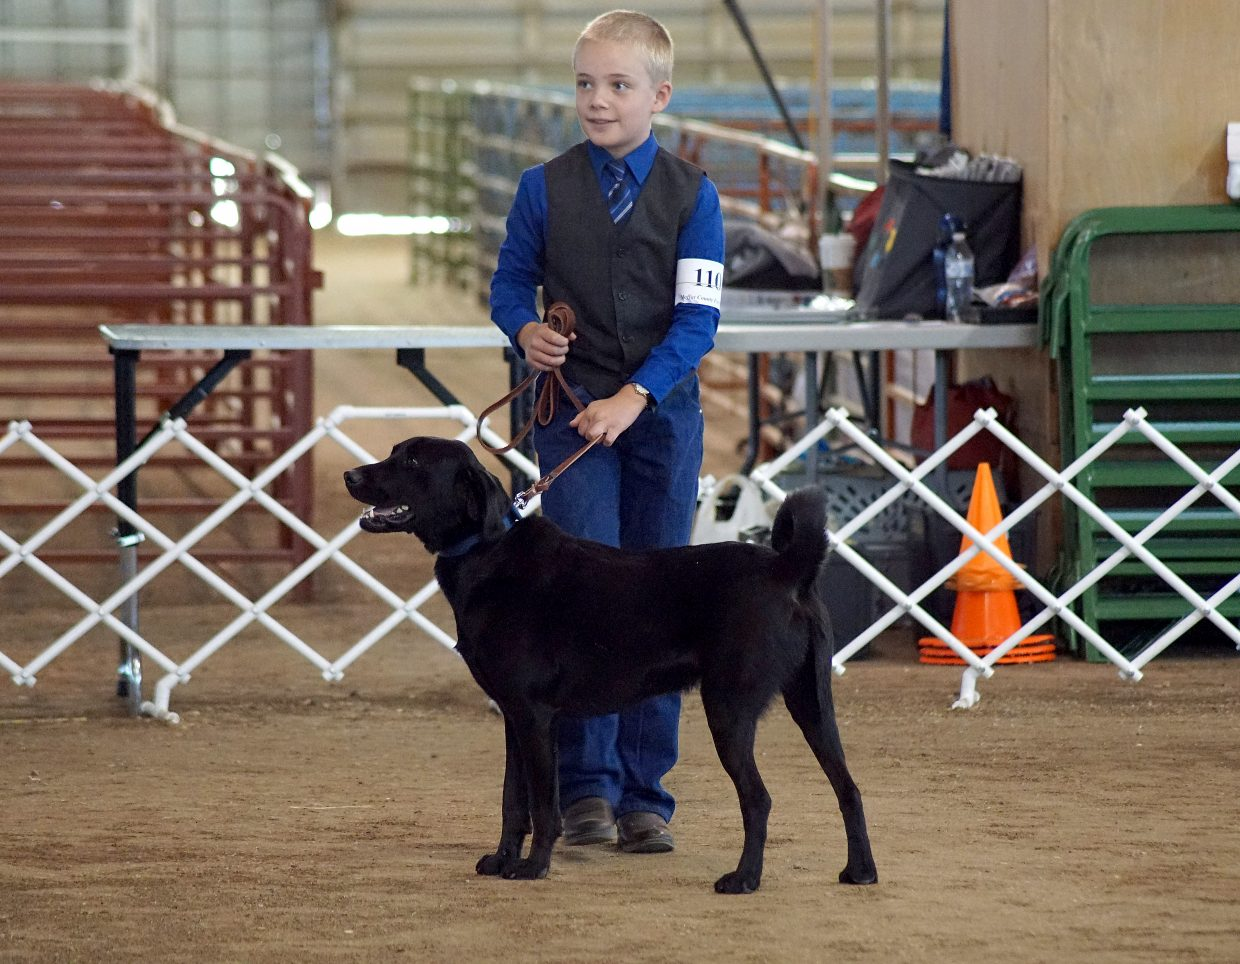 Travis LeFevre and his family adopted their dog, Sam, from the animal shelter, and after working on obedience training for the fair, Sam has become such a good dog, their dad says he can stay.